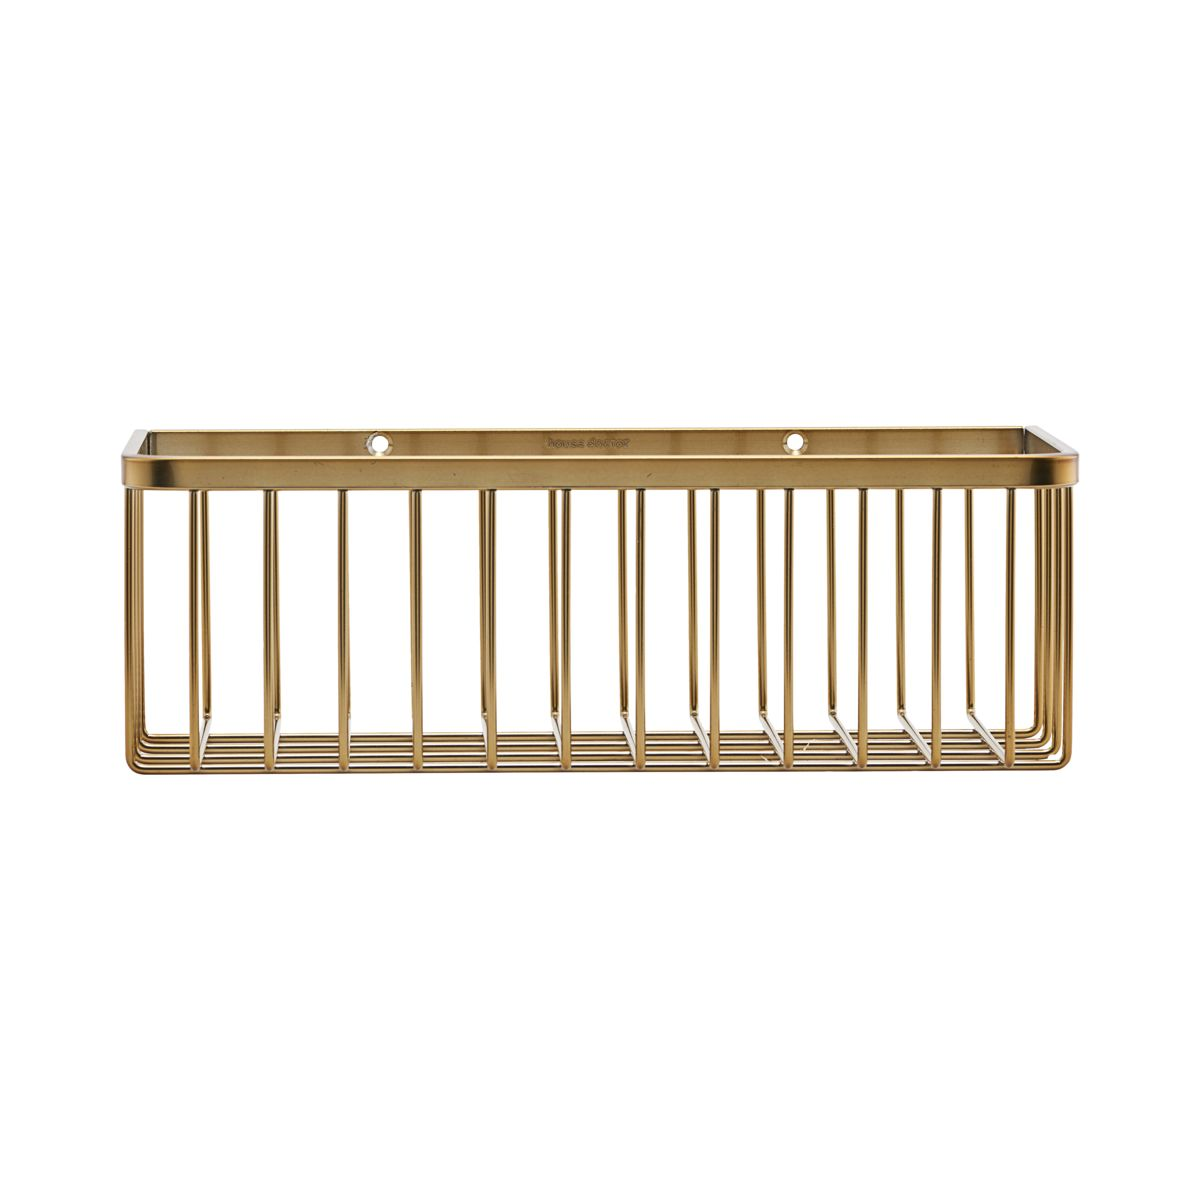 Brushed Brass Bathroom Storage Bracket